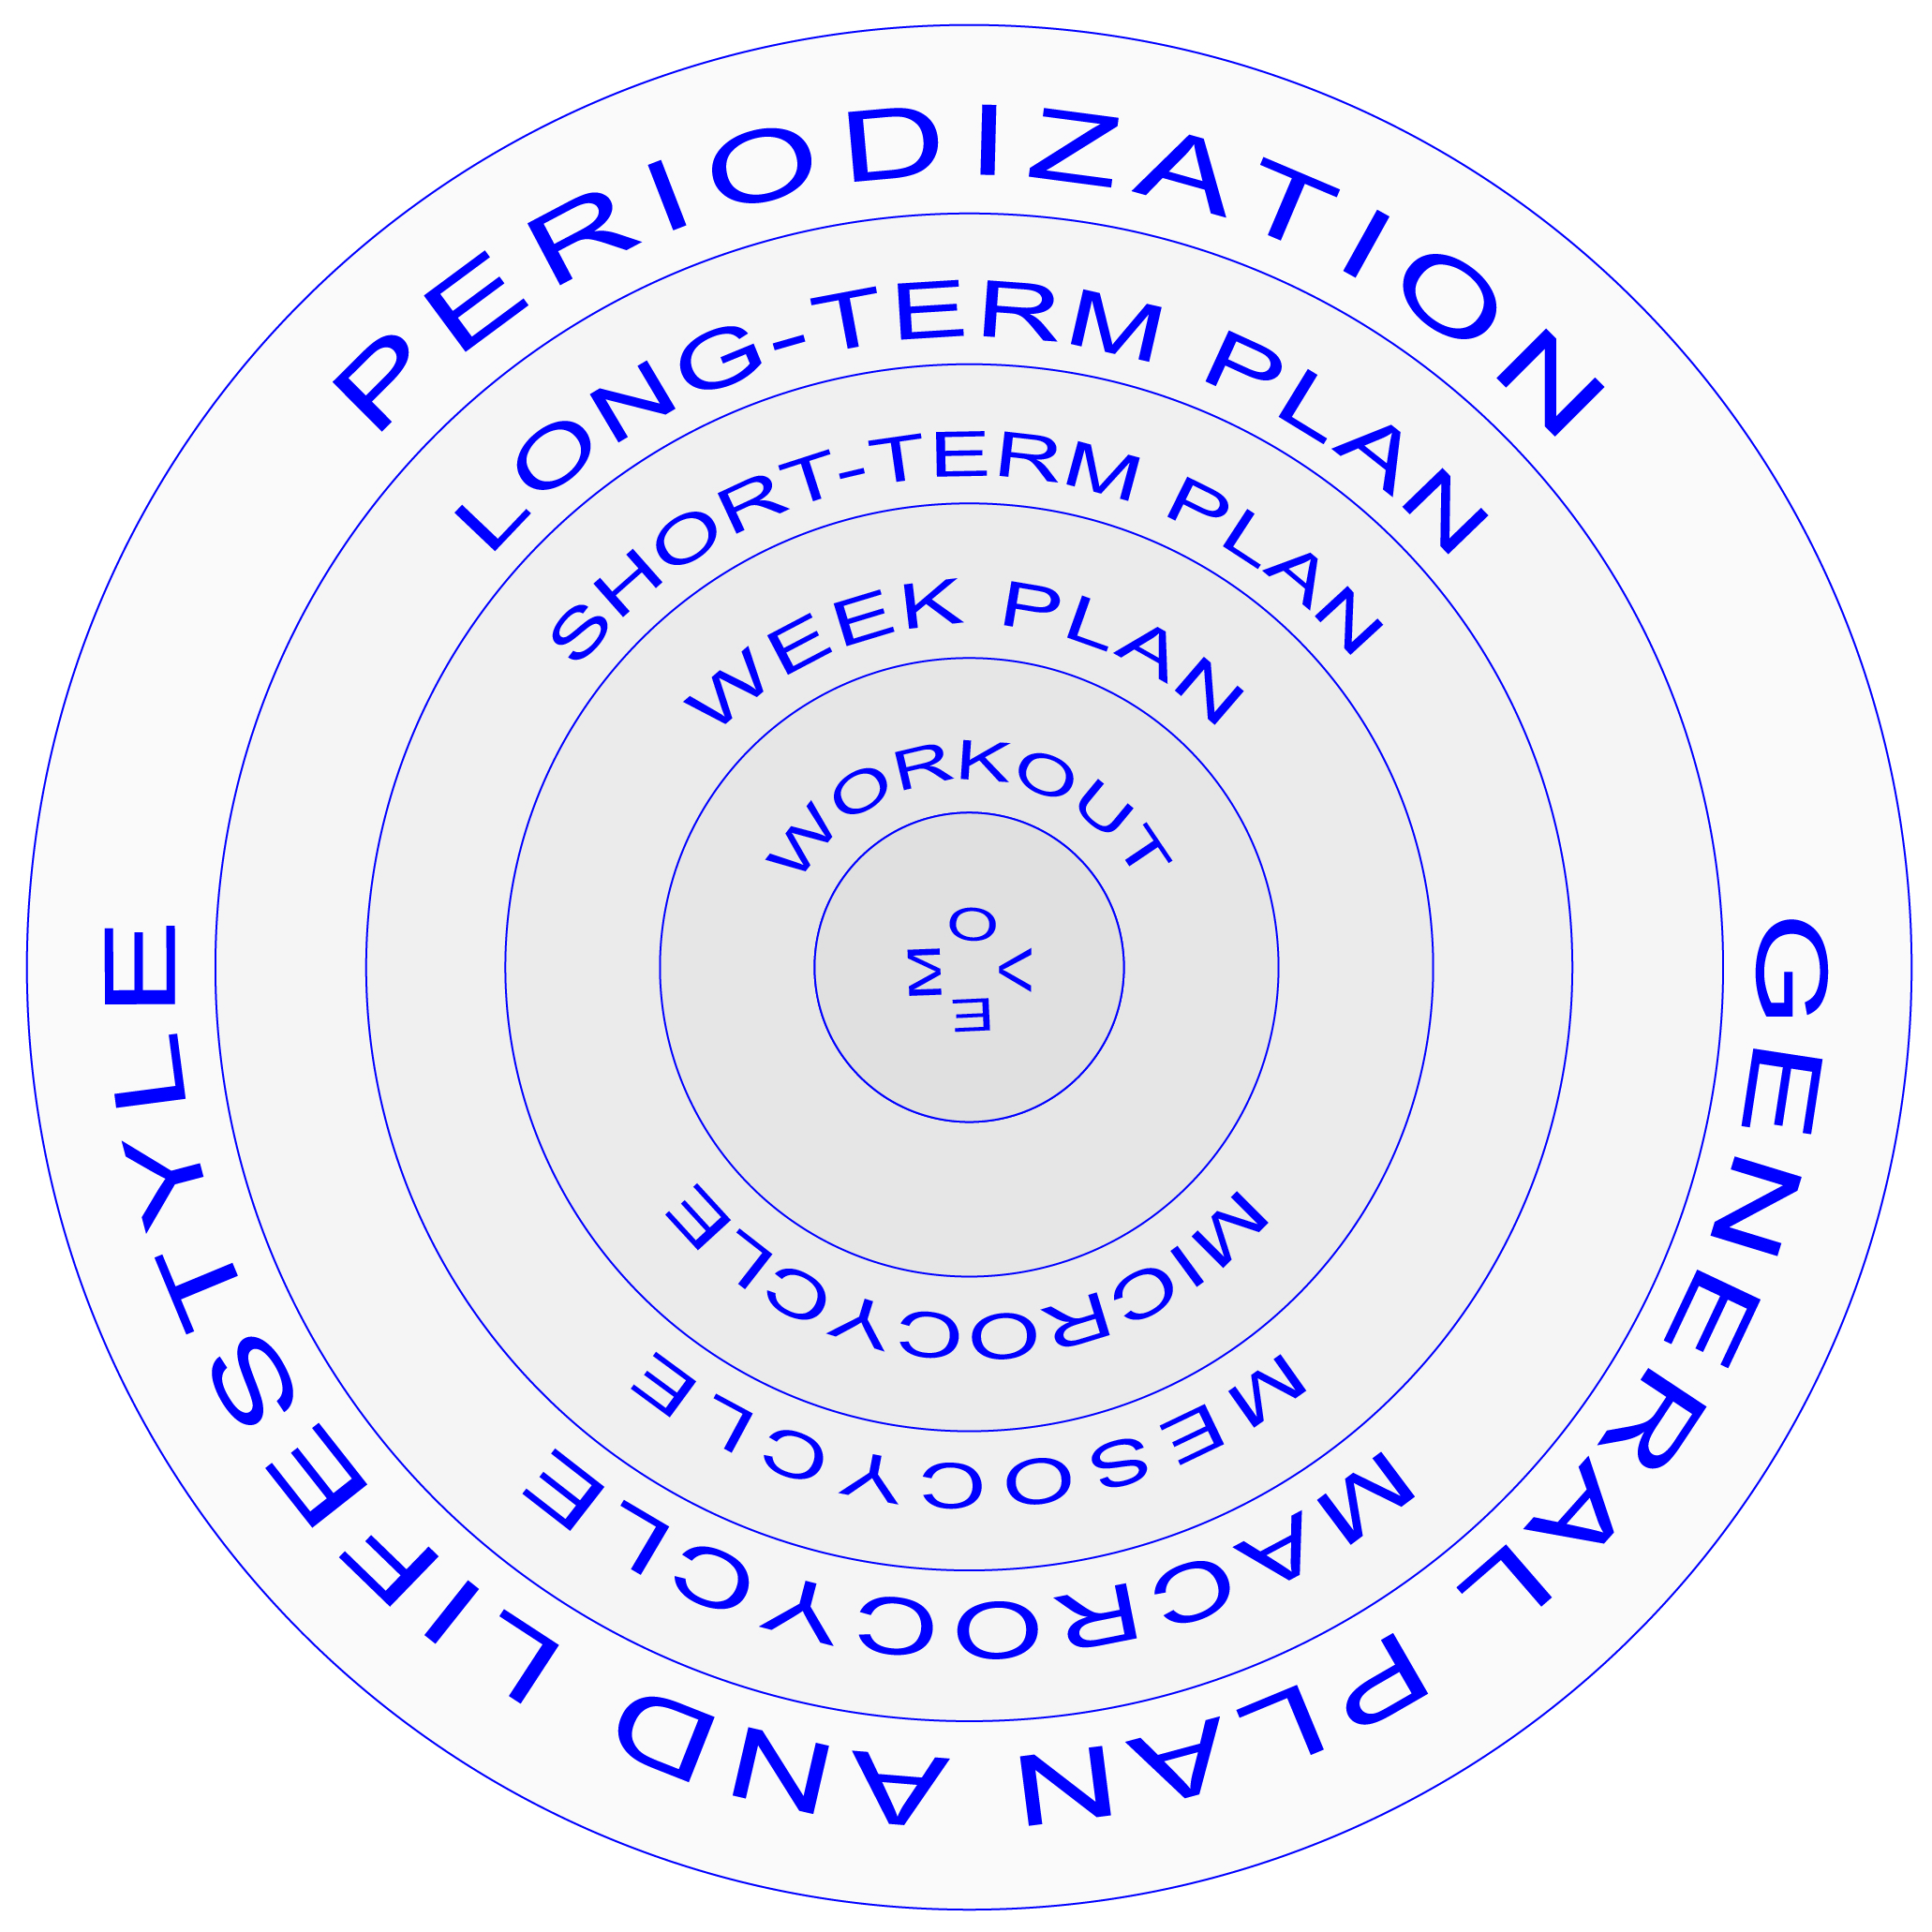 planning and periodization principle